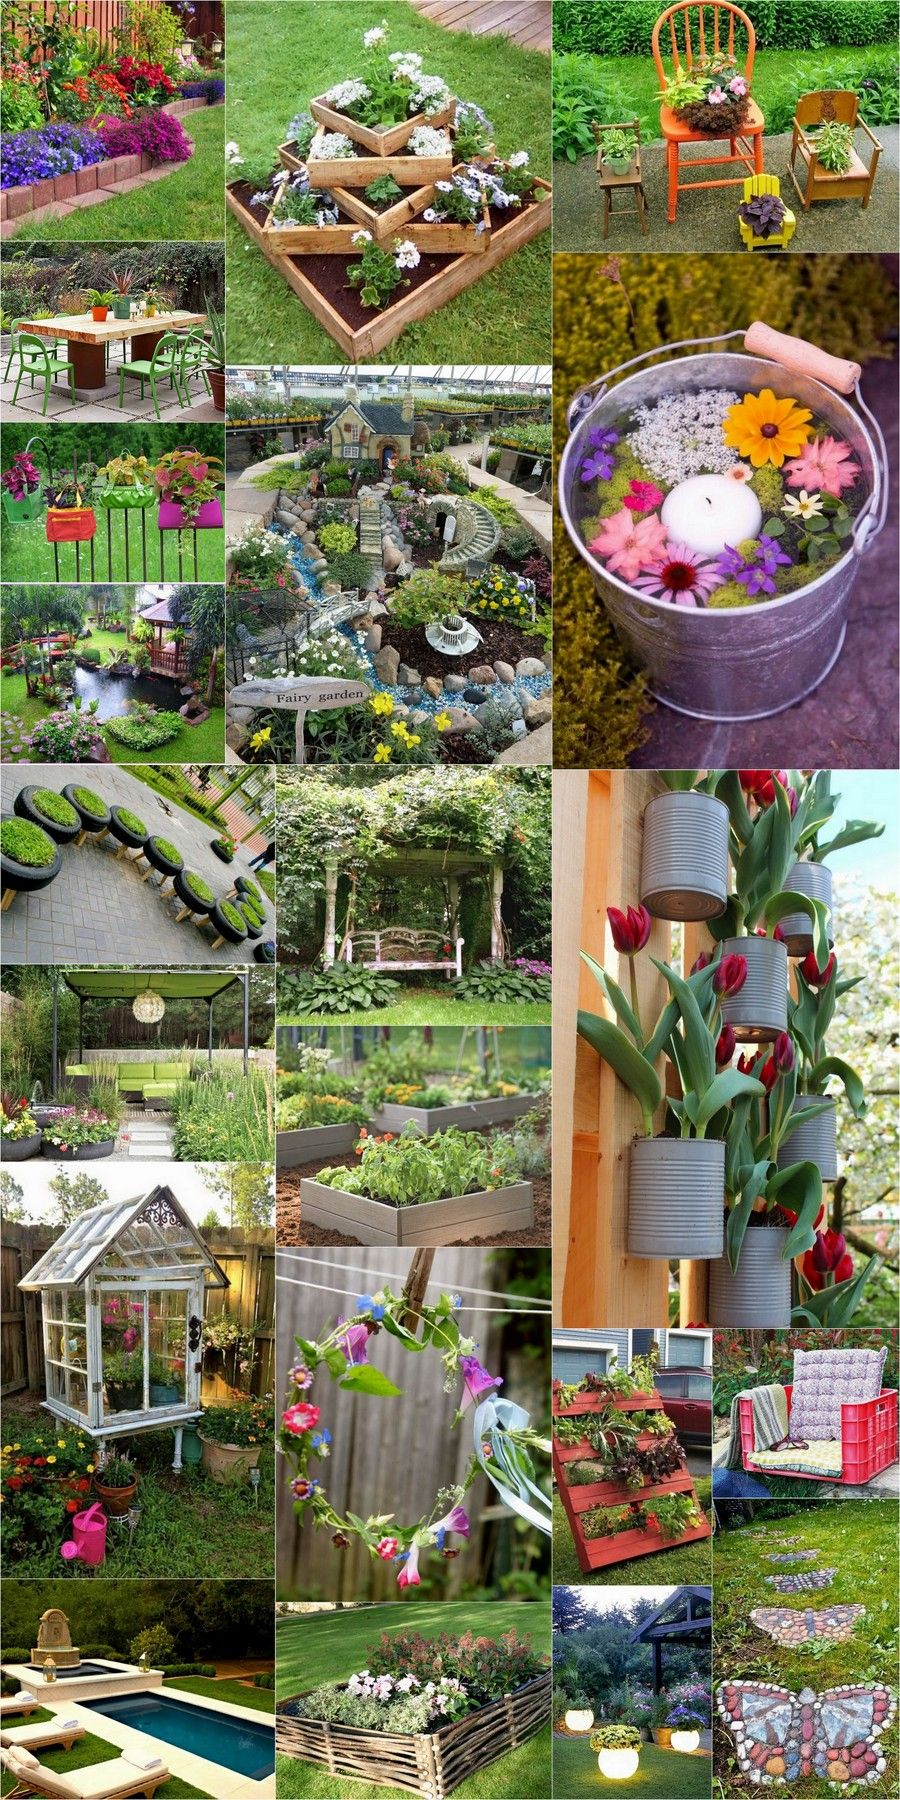 Gardening Is Regarded As The Healthiest Hobby One Could Have It Cultivates Positive Energy In You And Your Surroun Diy Gartendekoration Diy Garten Gartendekor